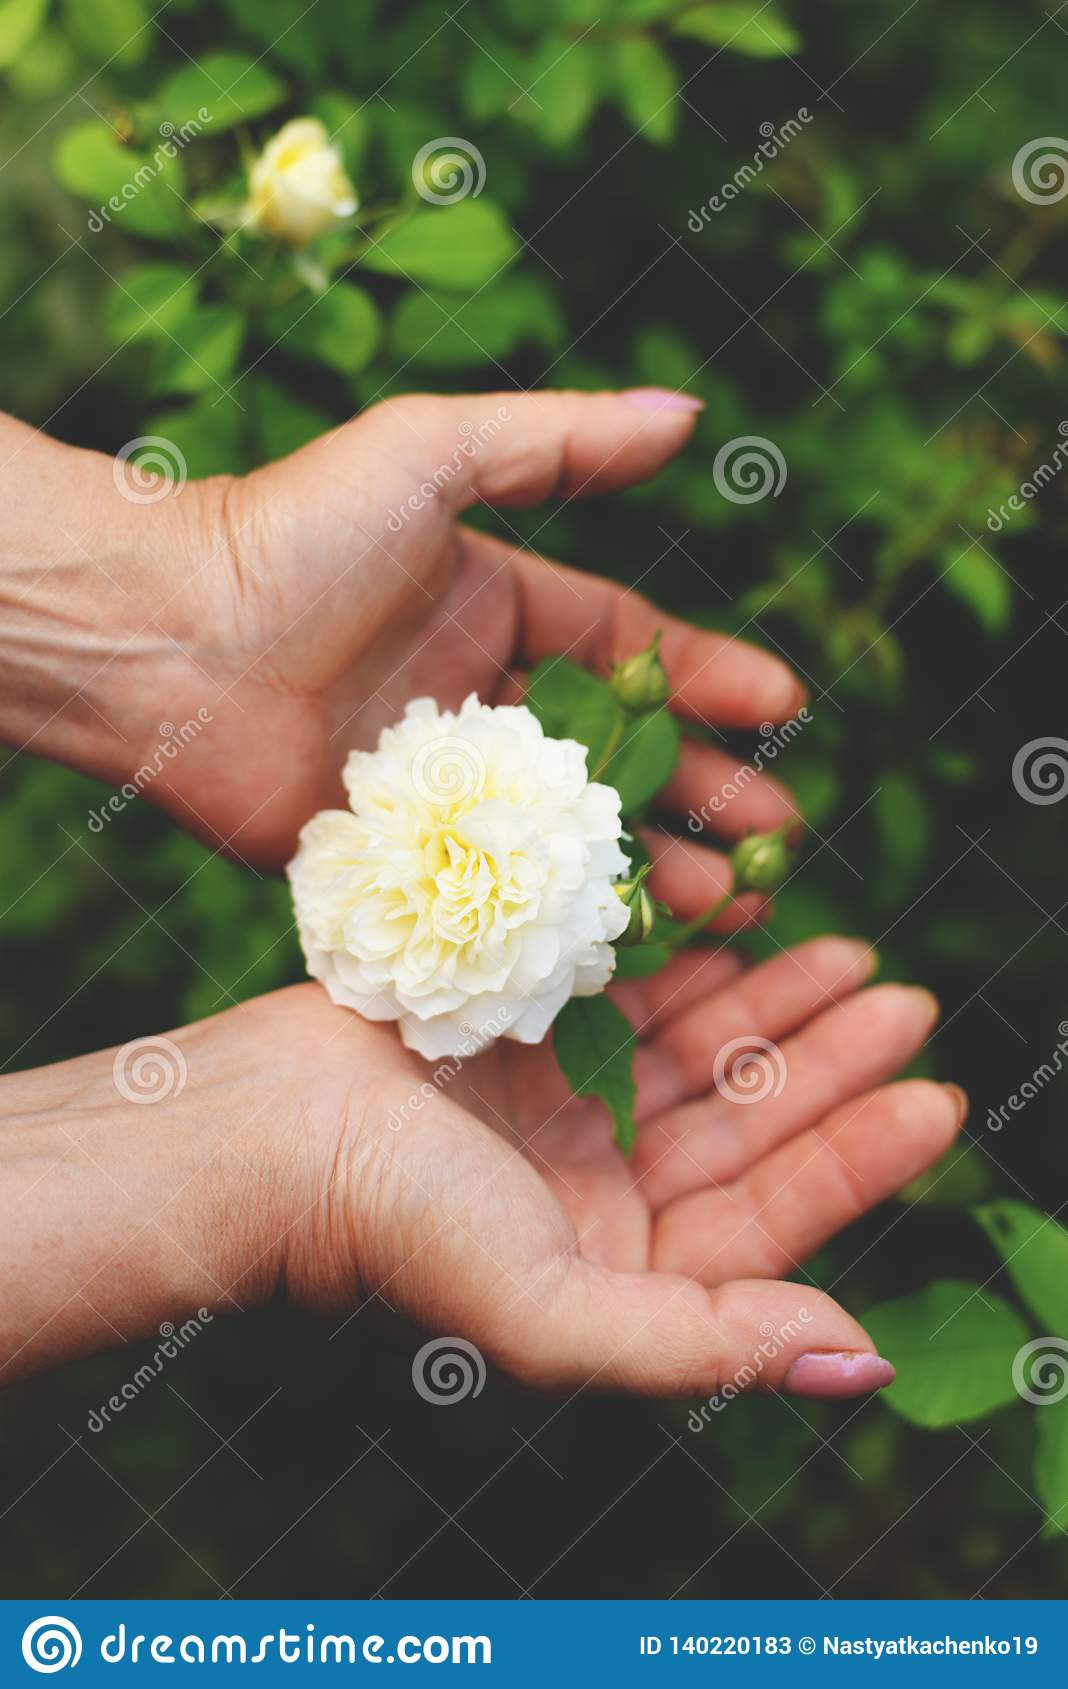 Woman holding a beautiful pink rose flower in her hands sitting in blooming summer garden